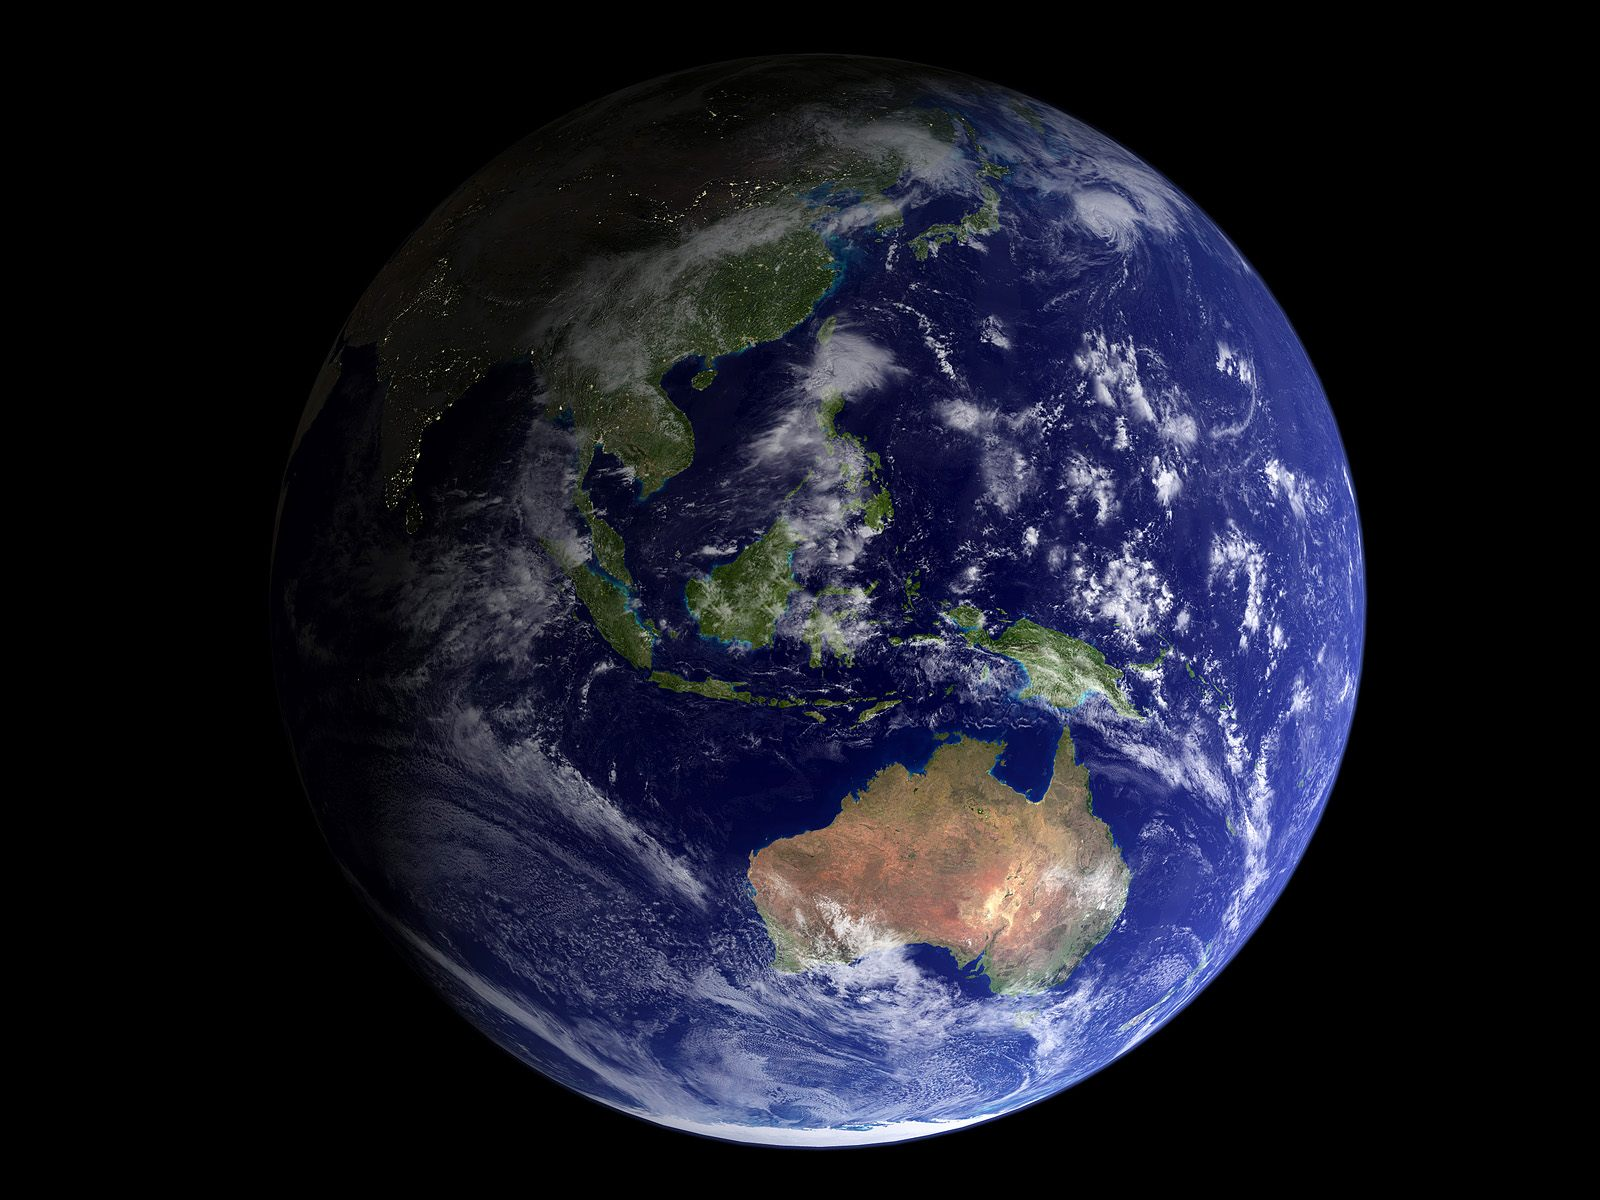 Merry Christmas hd earth from space wallpaper e i ibackgroundz 1600x1200